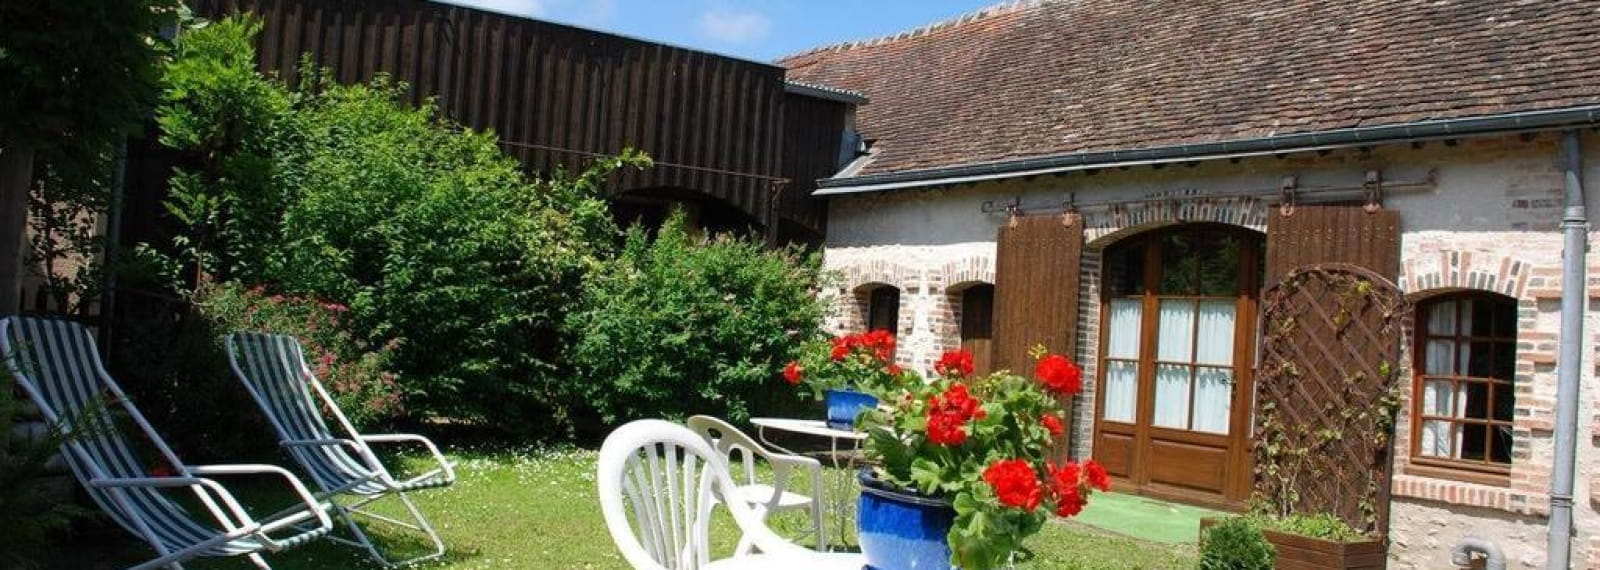 sologne-chambredhotes-lavallee-6